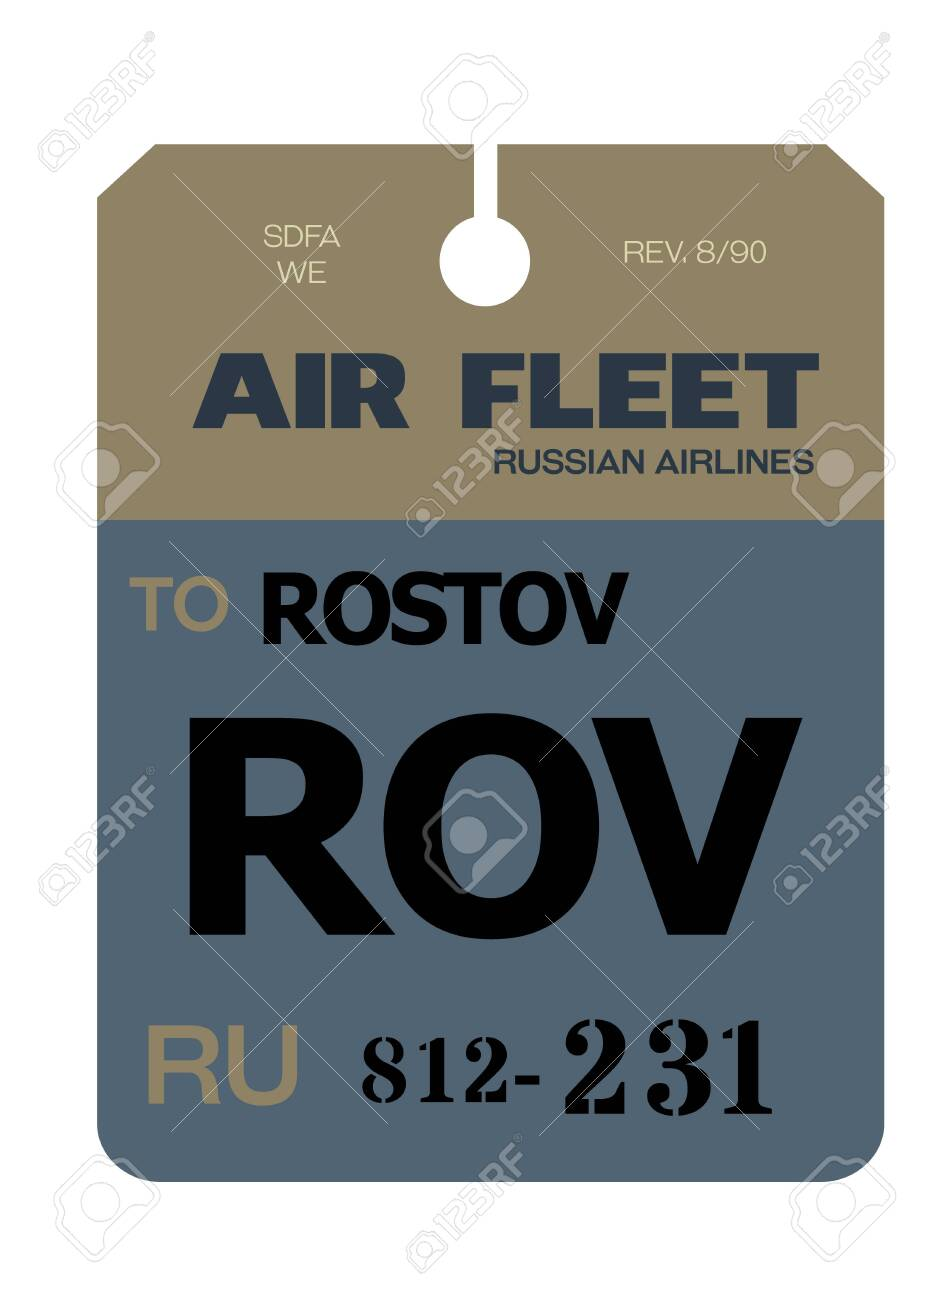 Rostov-on-Don realistically looking airport luggage tag illustration - 124362464